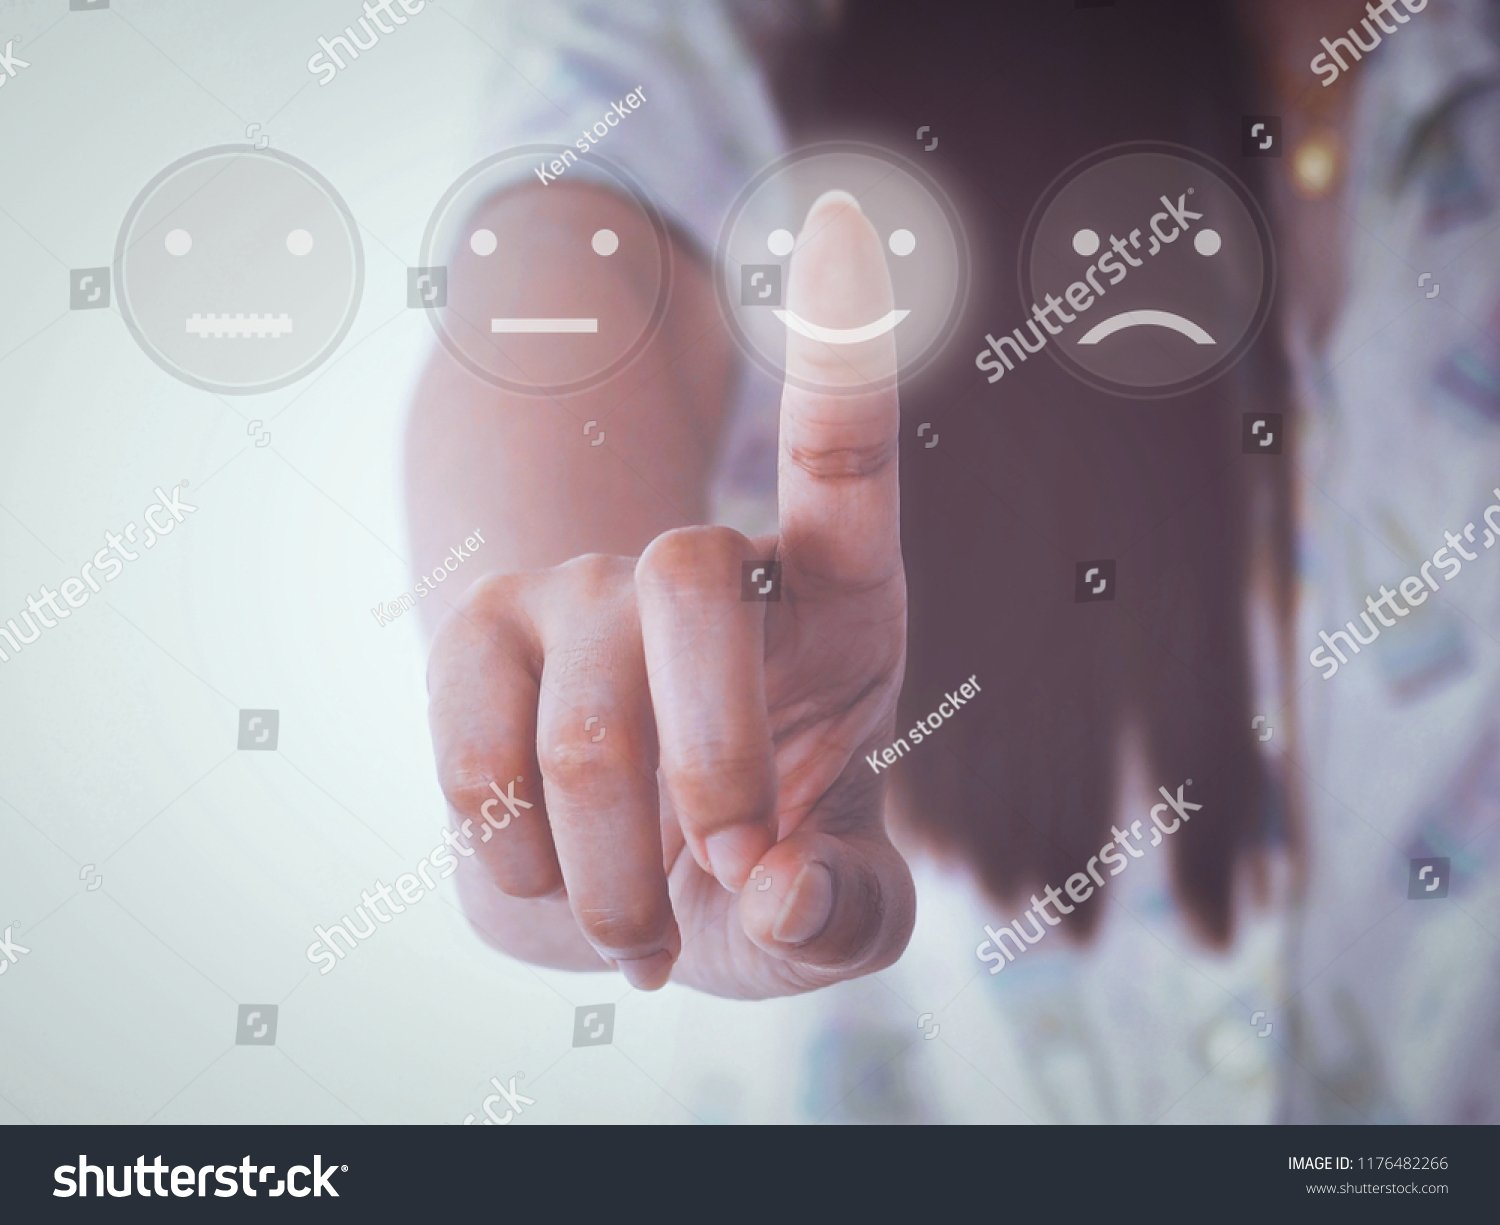 stock-photo-hand-women-pressing-smile-buttons-on-virtual-touch-screen-1176482266